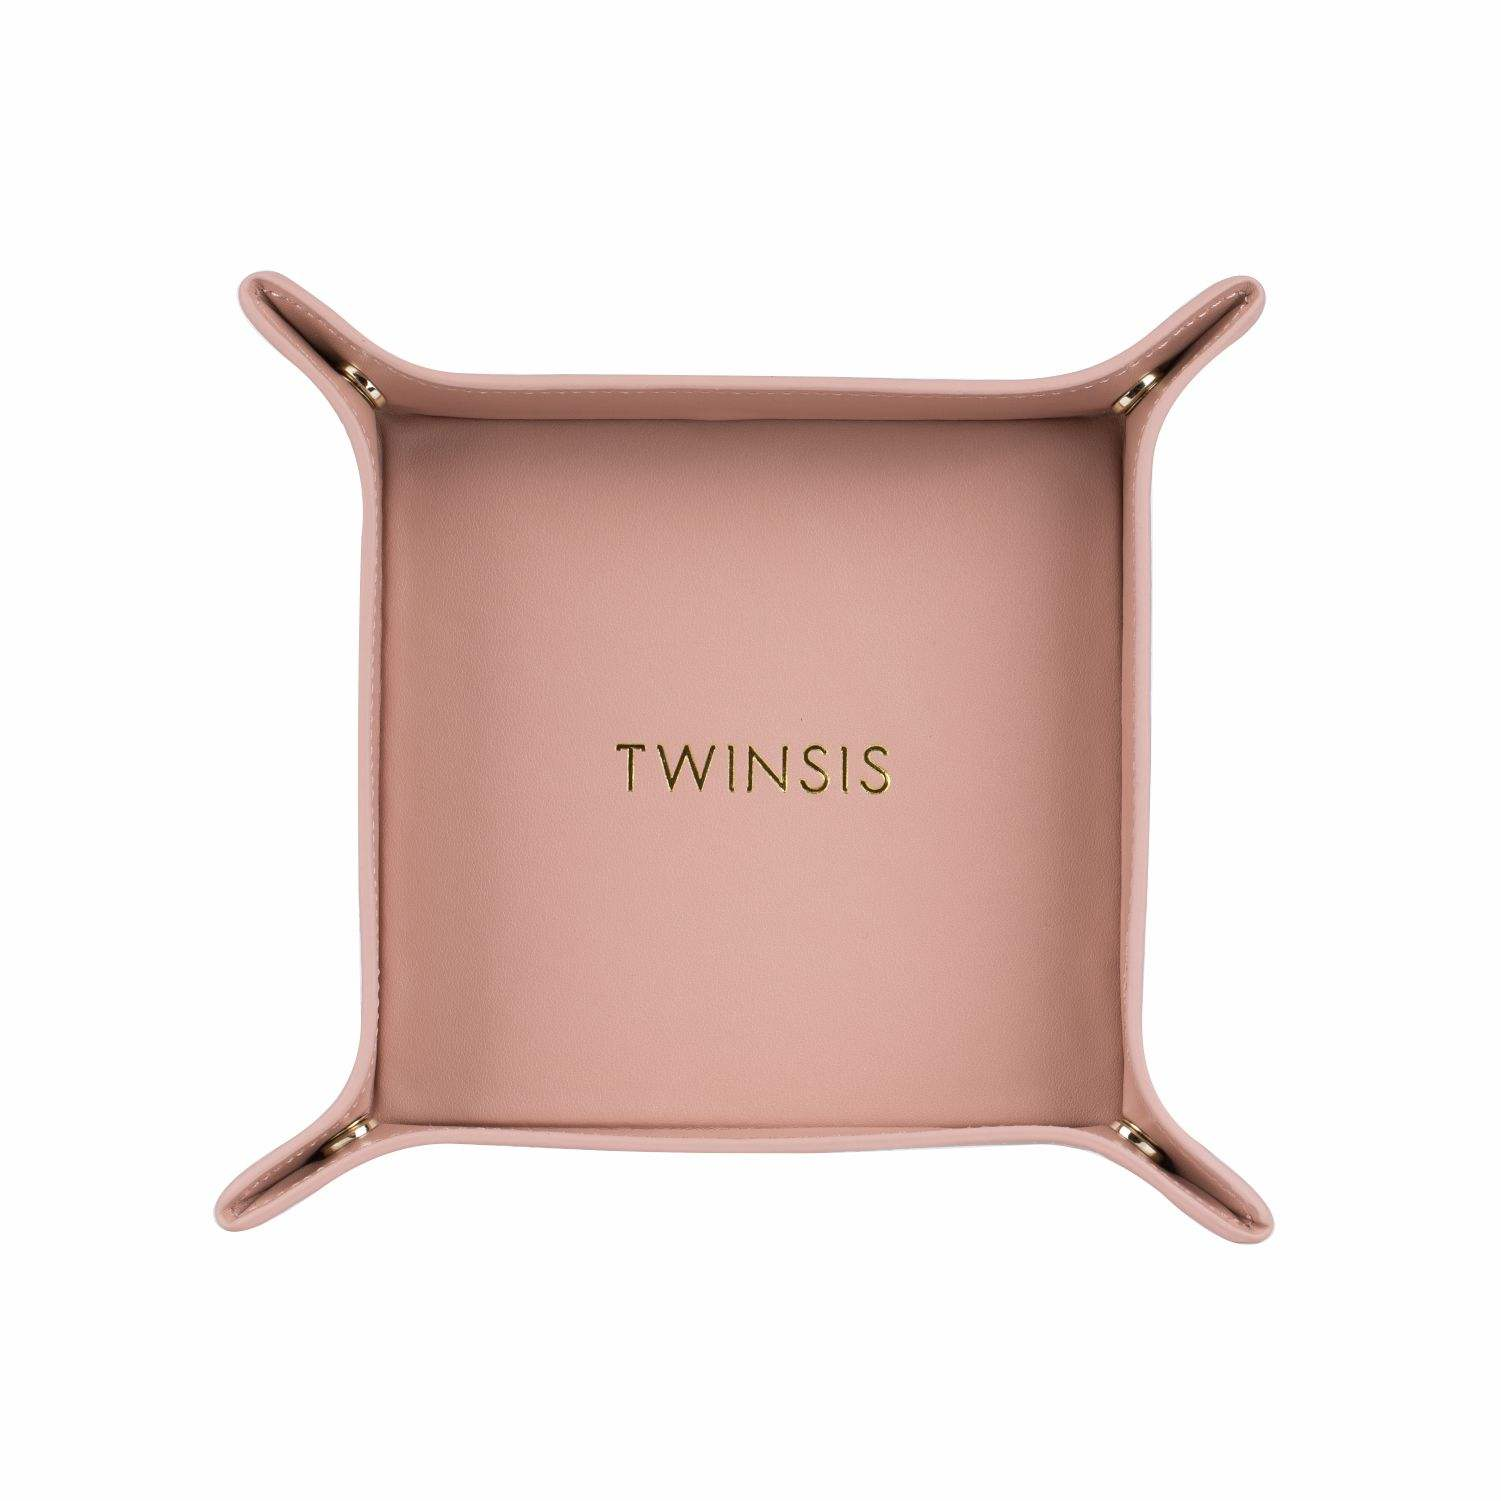 Twinsis Design Wholesale Customized Leather Valet Tray Office House Square Folding Home Accessories Decorative Serving Trays